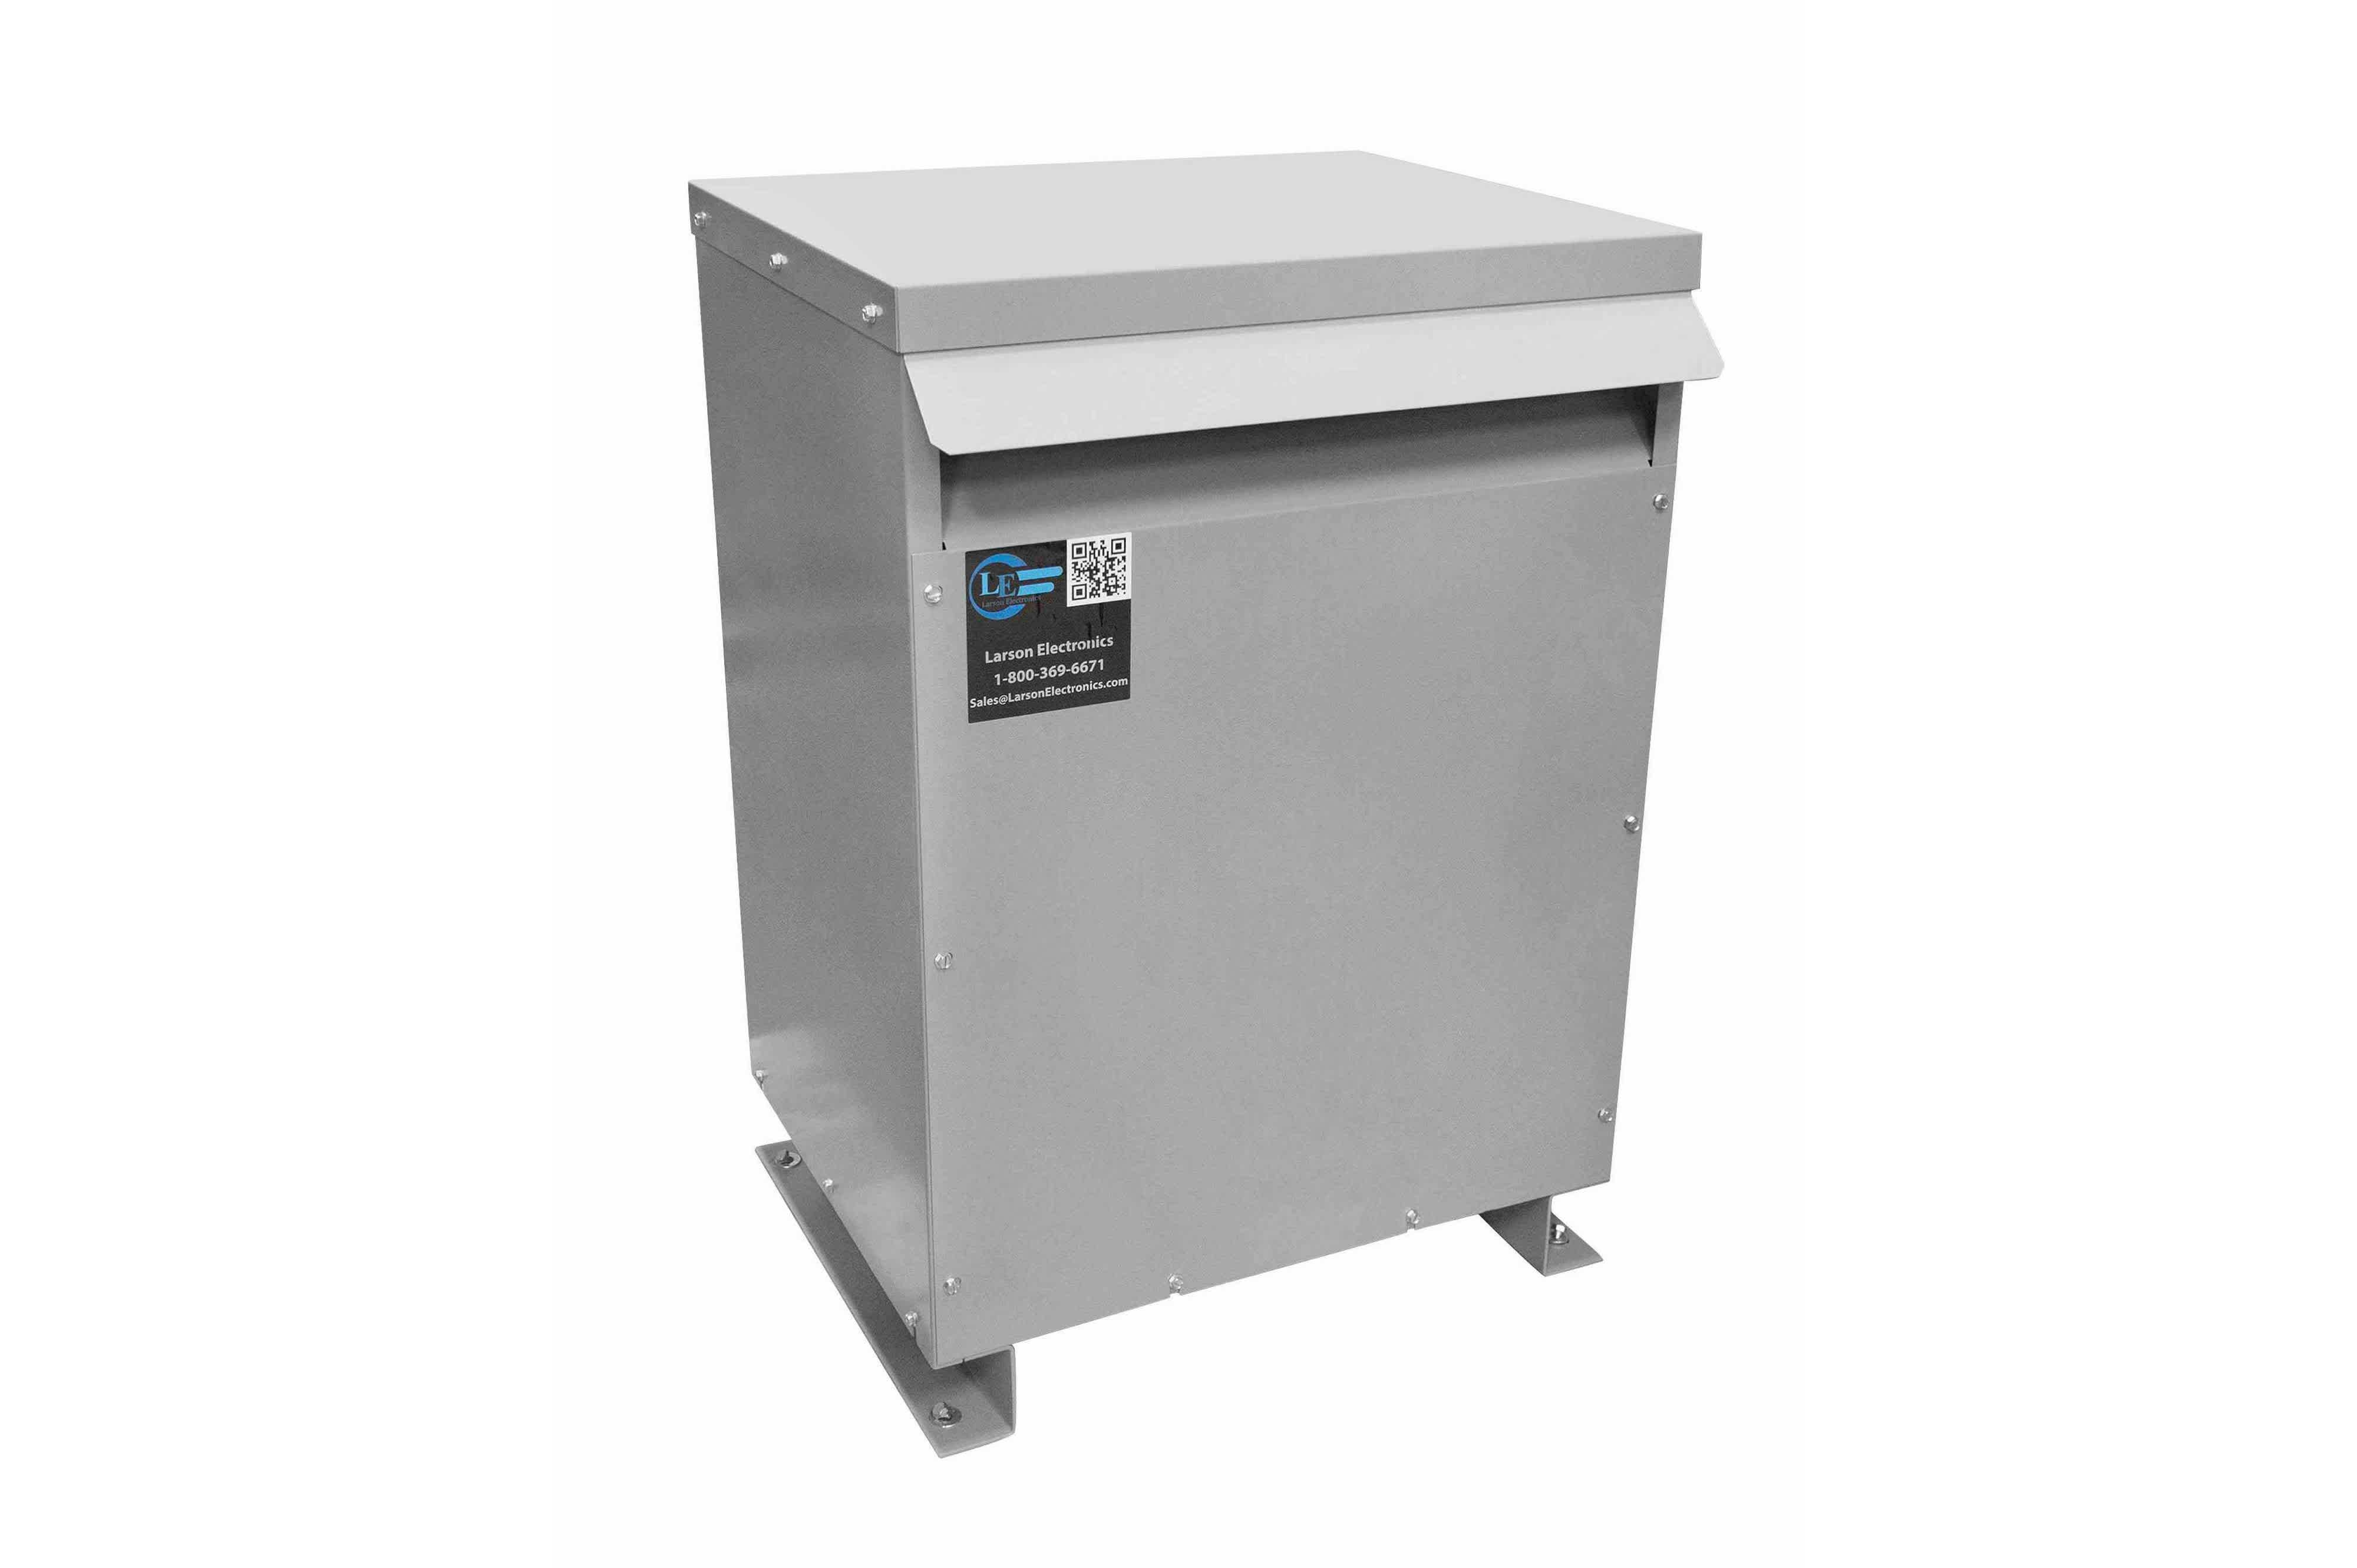 29 kVA 3PH Isolation Transformer, 240V Wye Primary, 208V Delta Secondary, N3R, Ventilated, 60 Hz